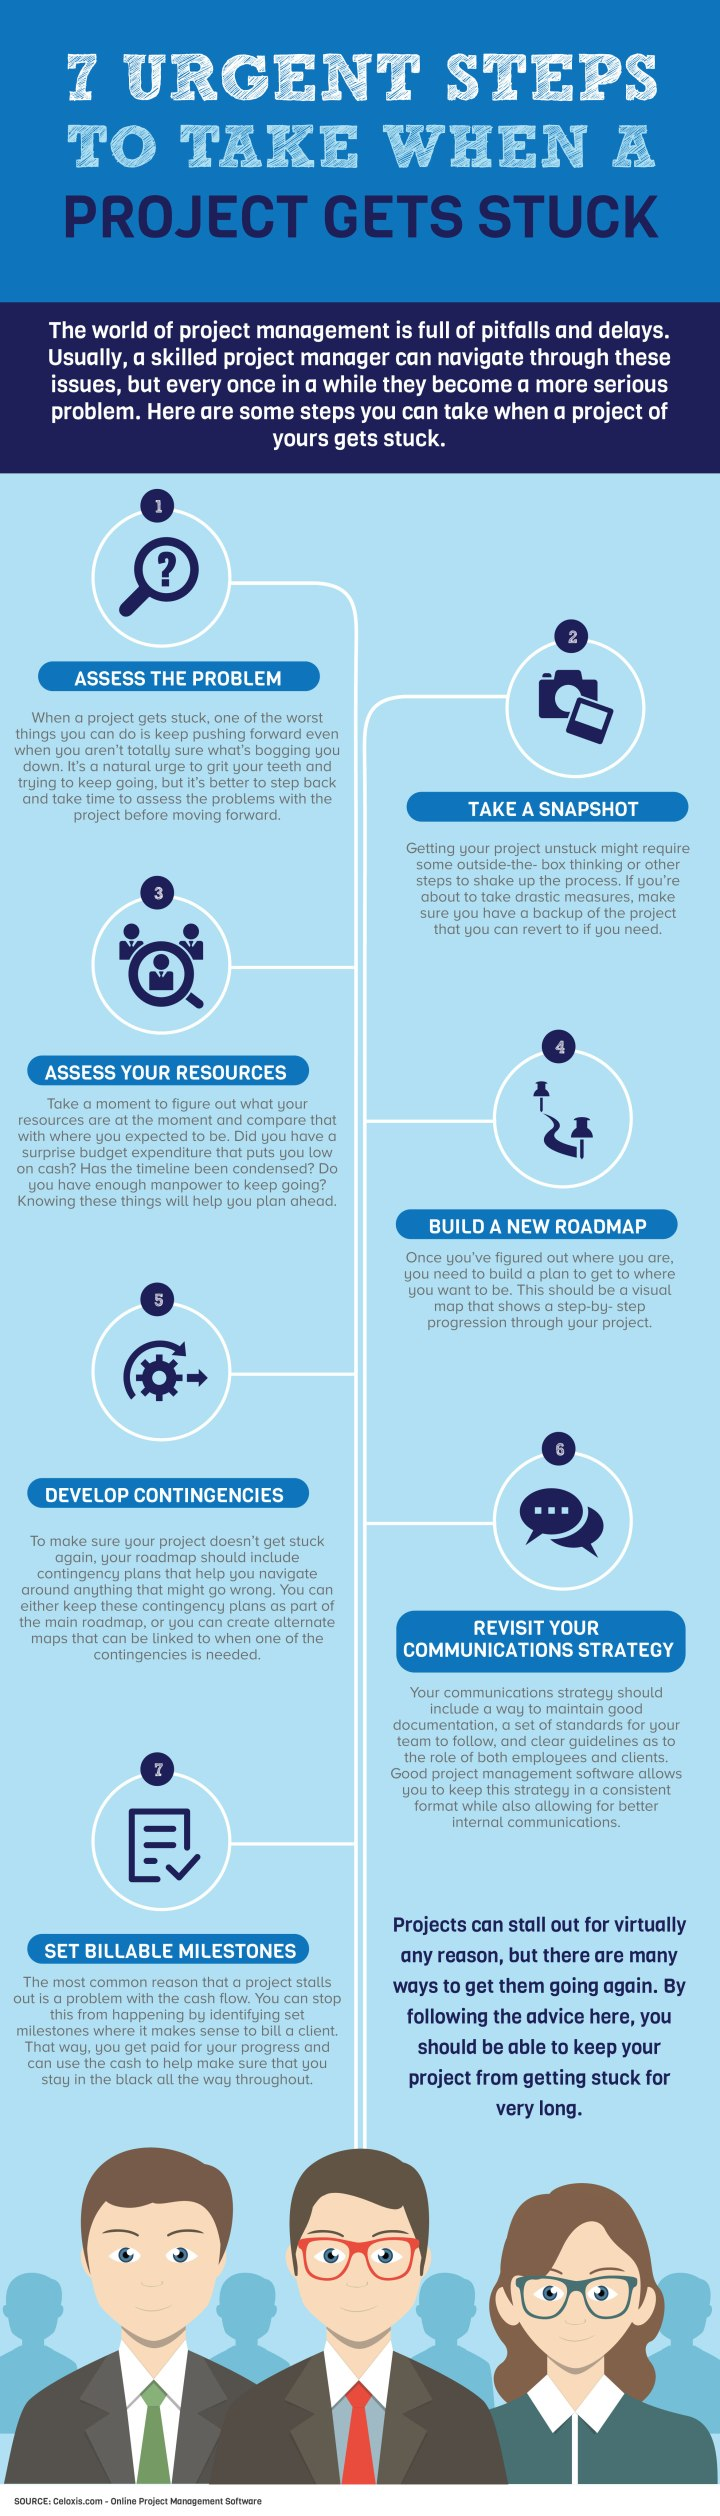 INFOGRAPHIC: 7 Urgent Steps to Take When a Project Gets Stuck